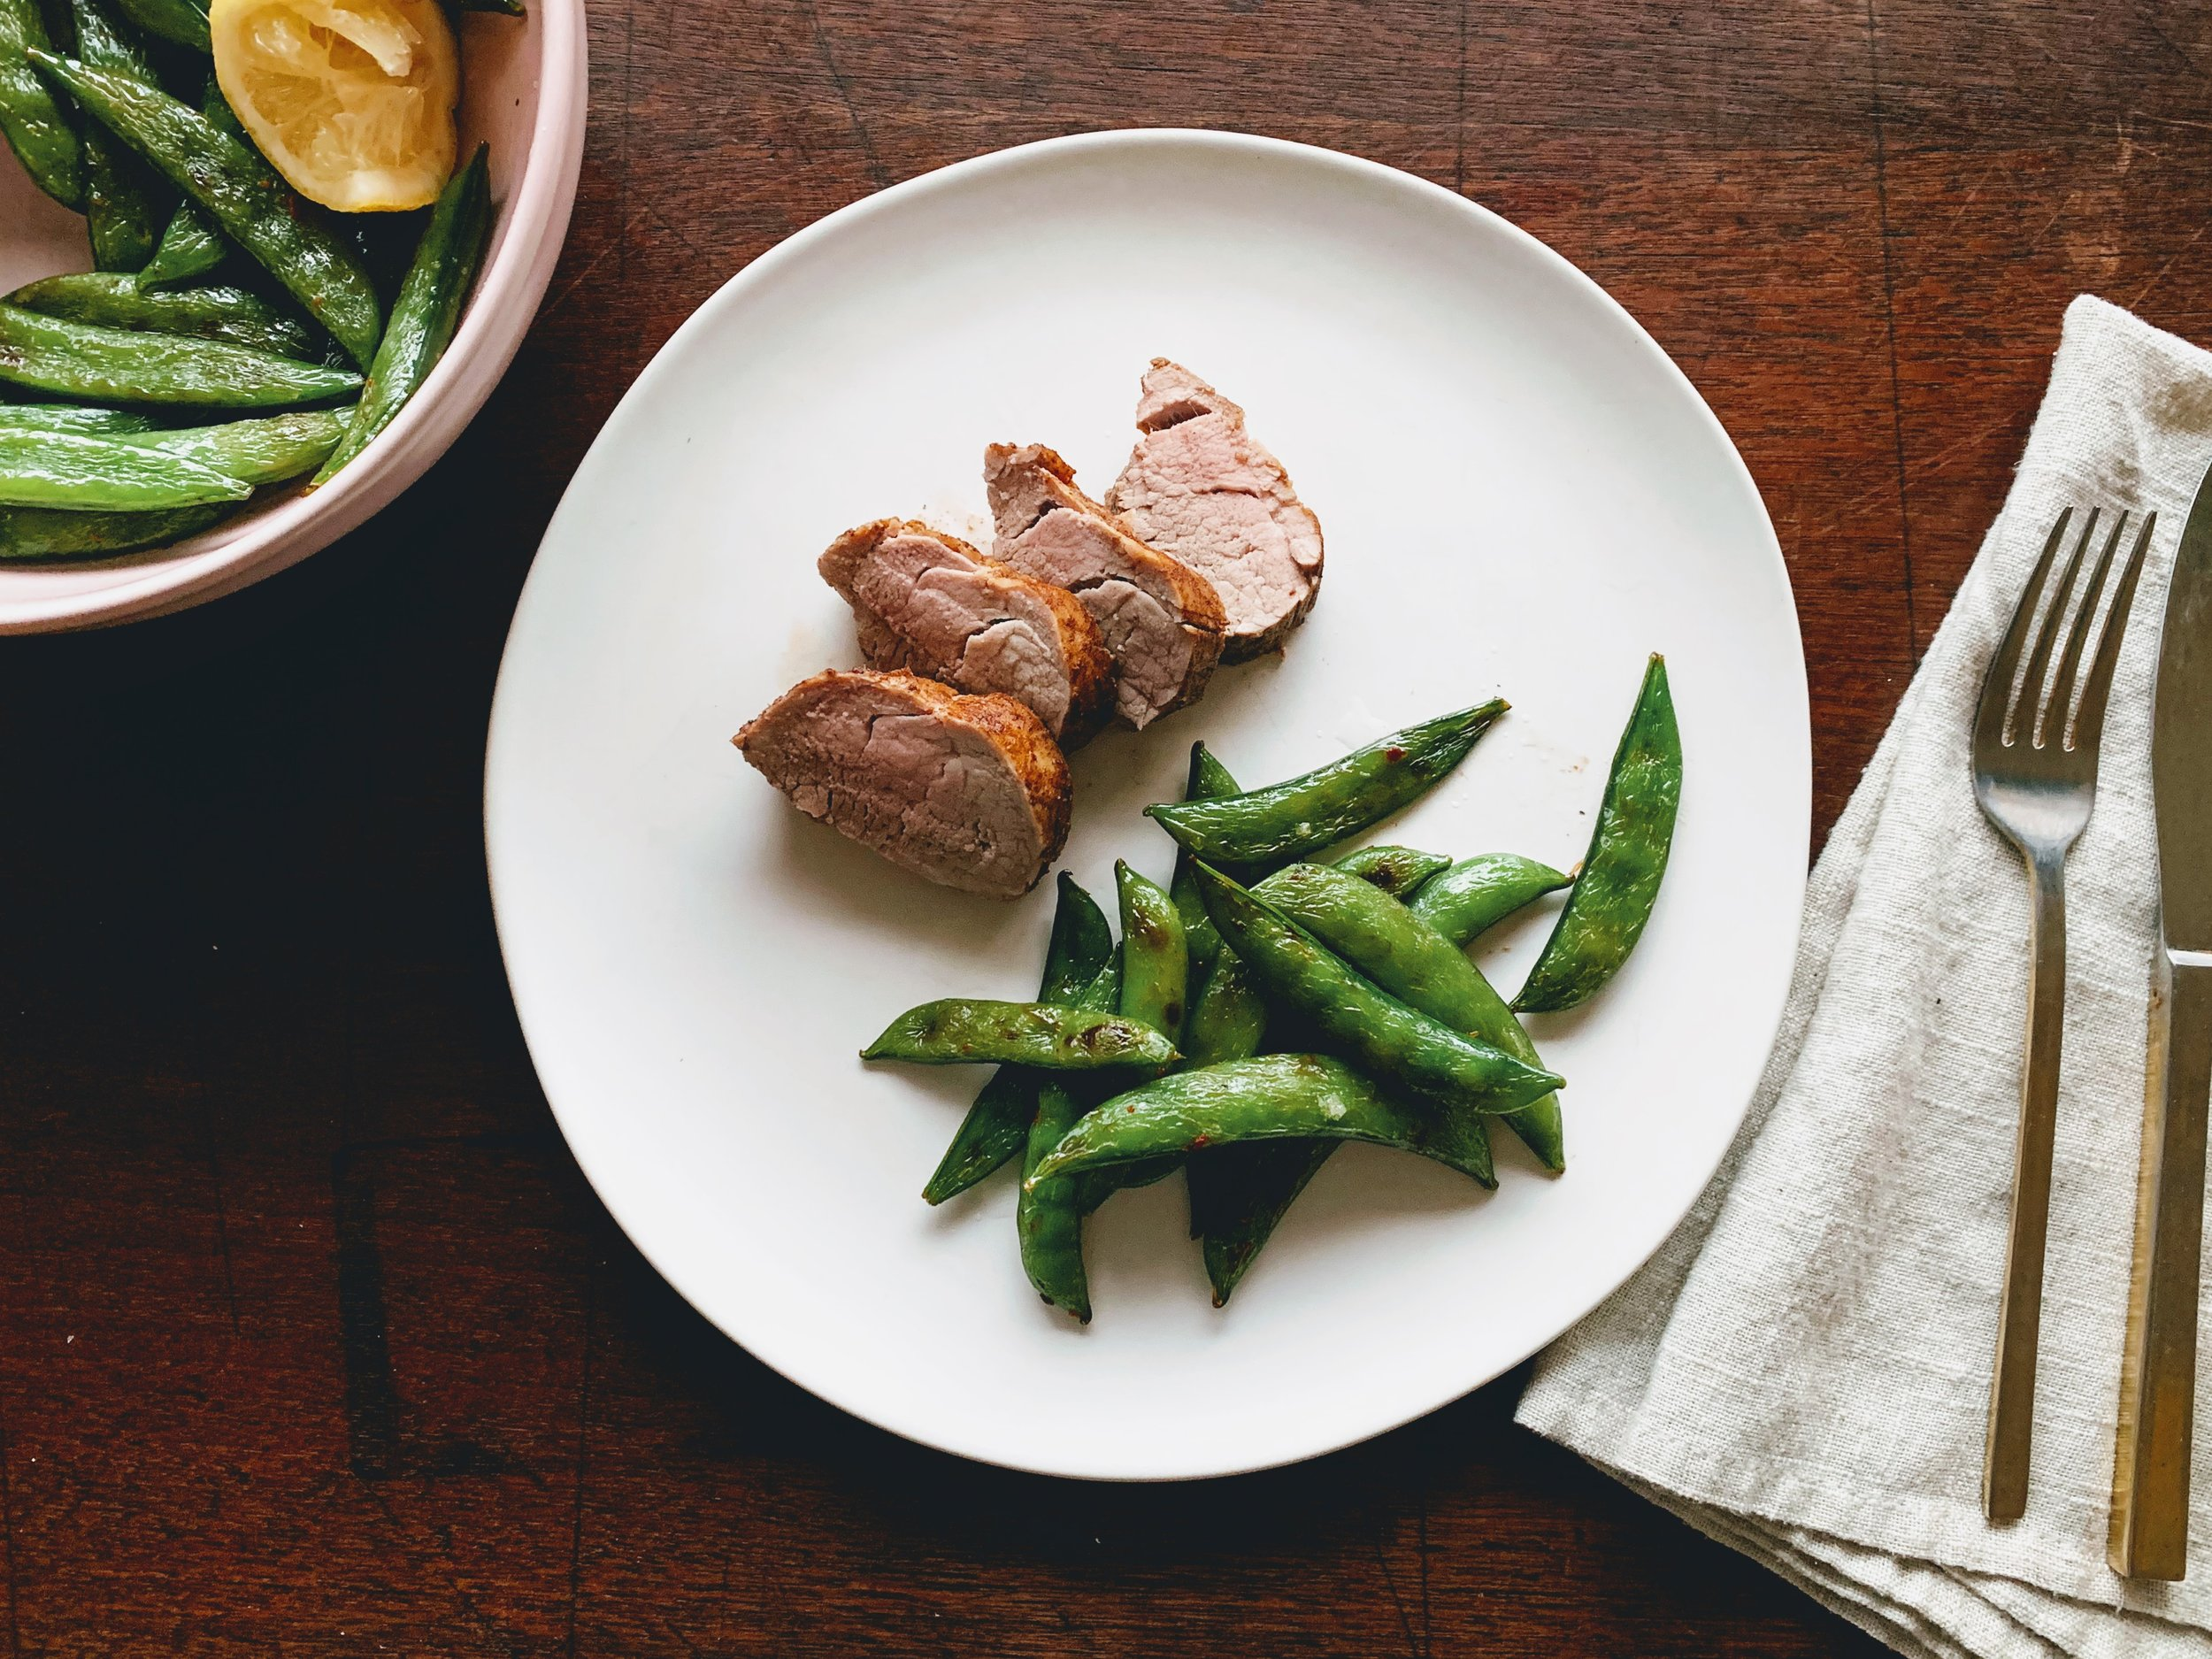 Chinese 5 Spice Pork Tenderloin with Blistered Snap Peas